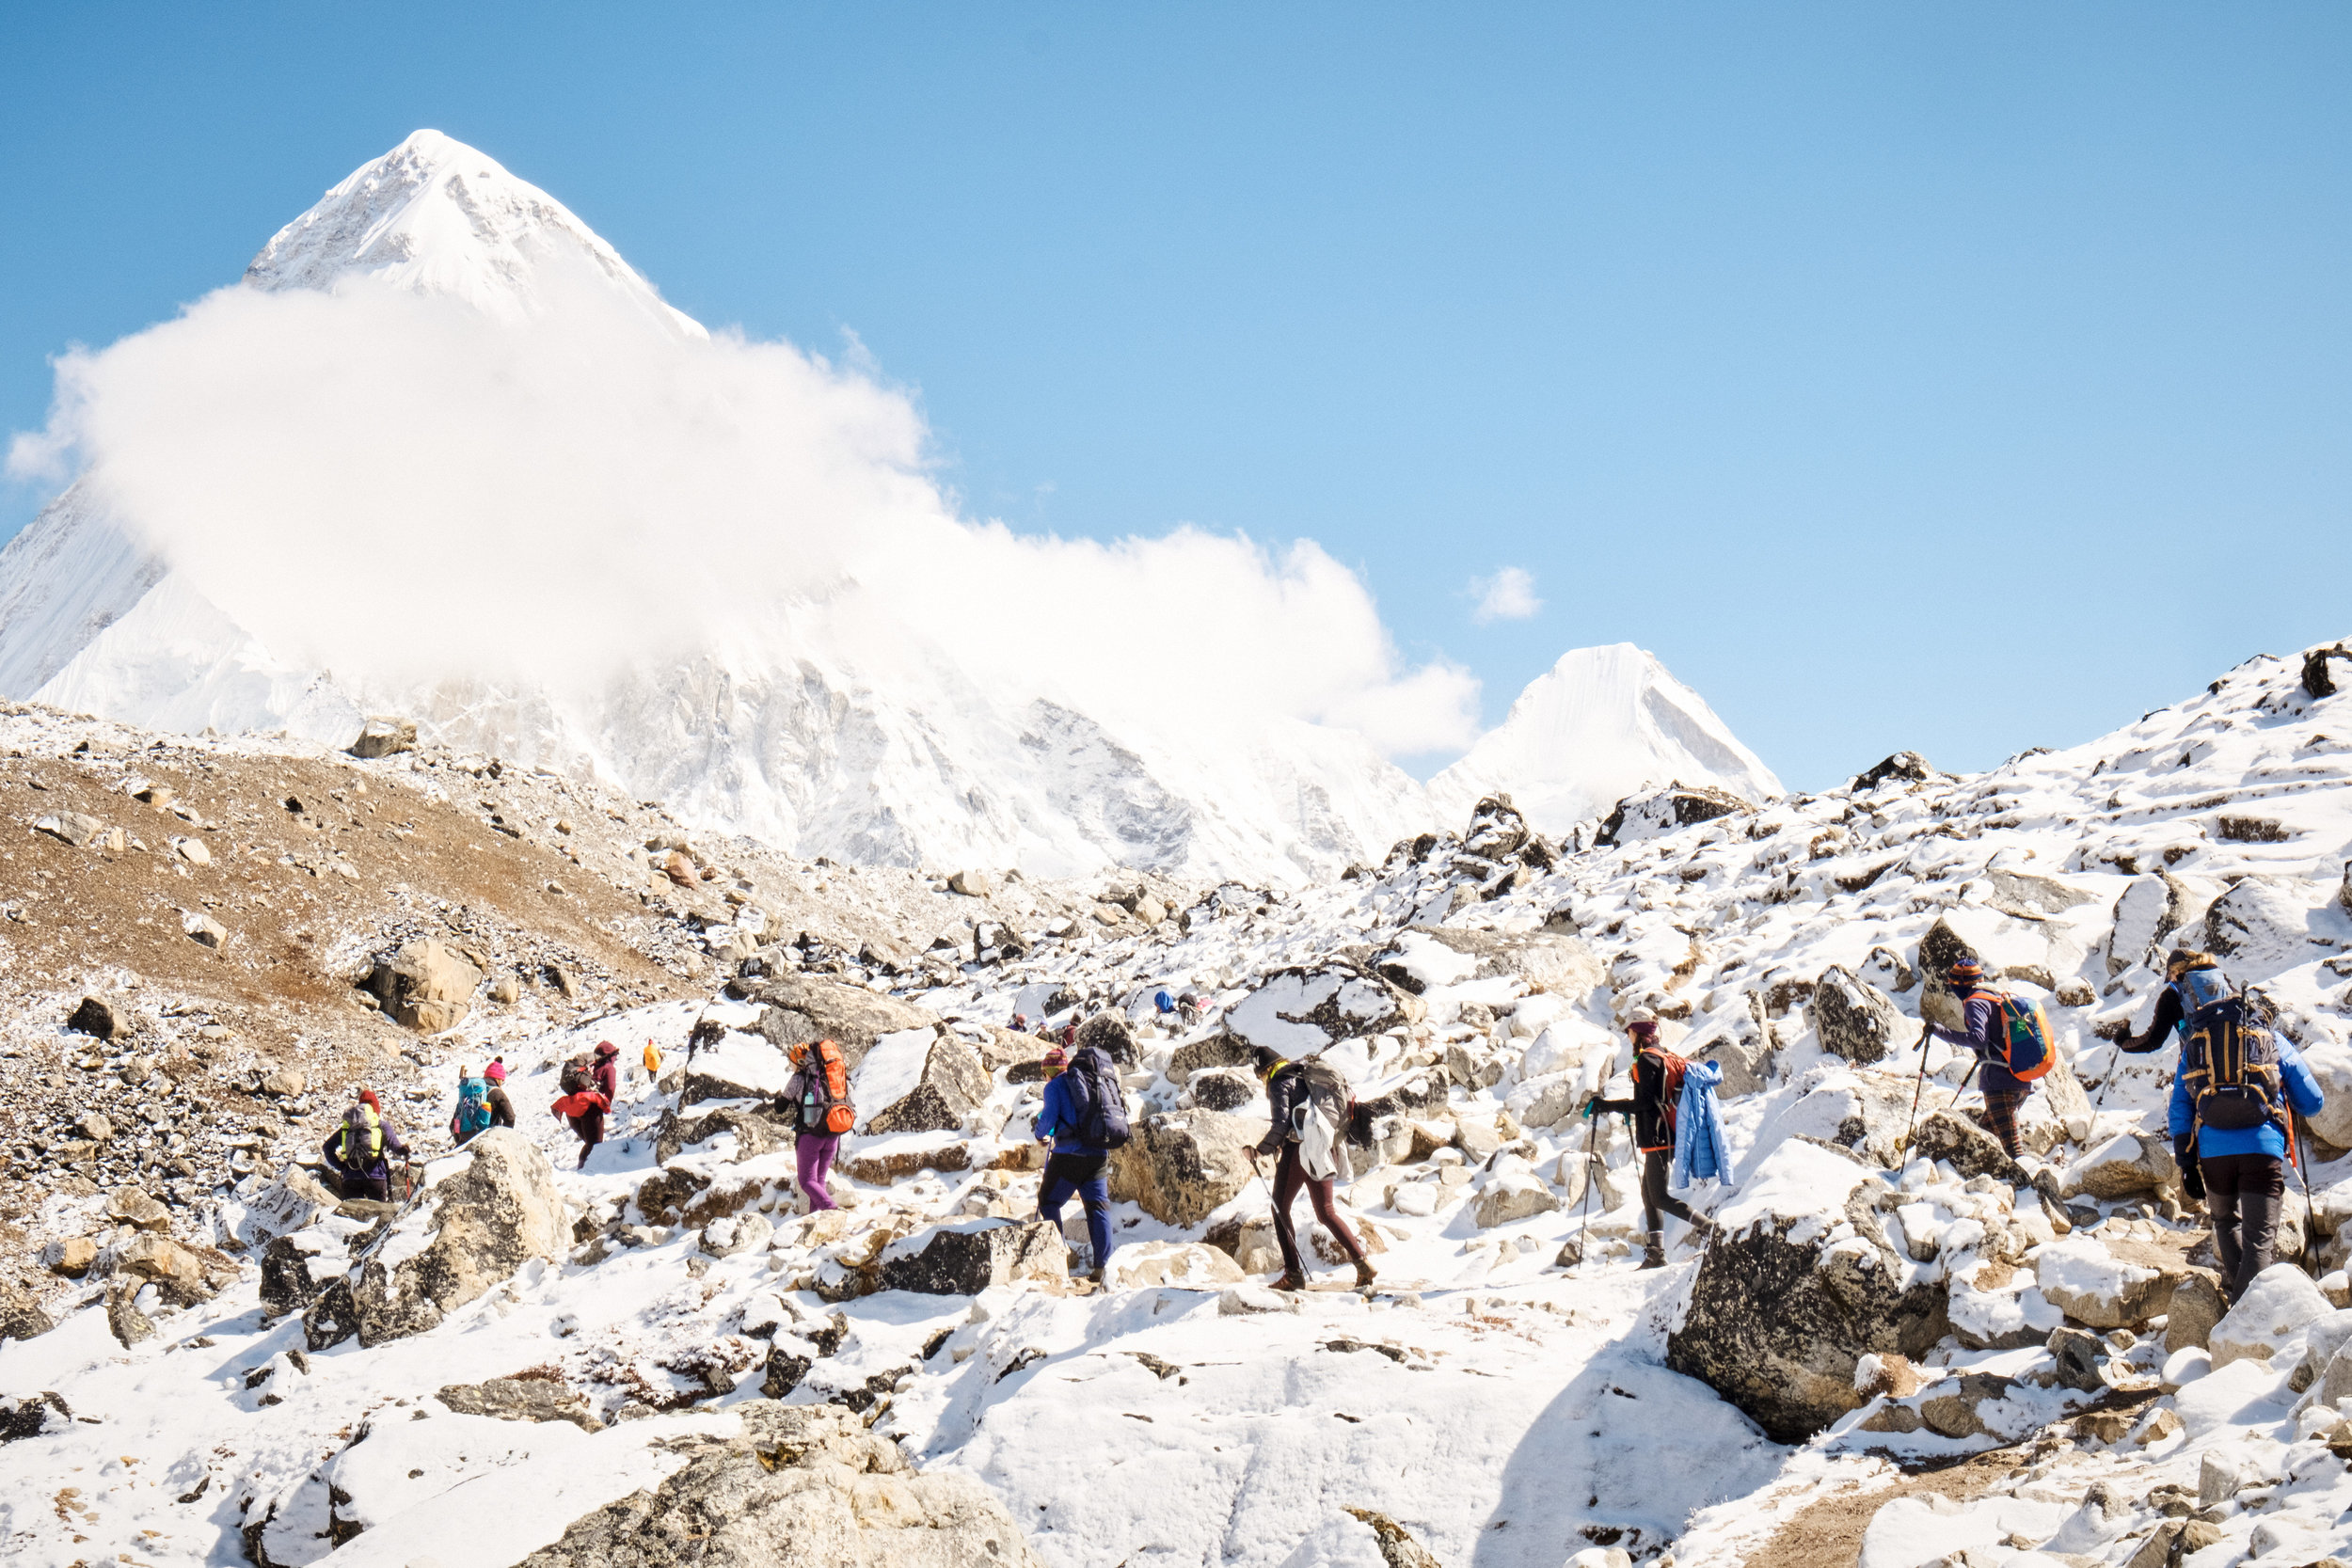 DAY 9:ALL ABOUT THAT BASE - LOBUCHE to EVEREST BASE CAMP to GORAK SHEPElevation: 4,900 - 5,380 - 5,125 mDistance: 15 km